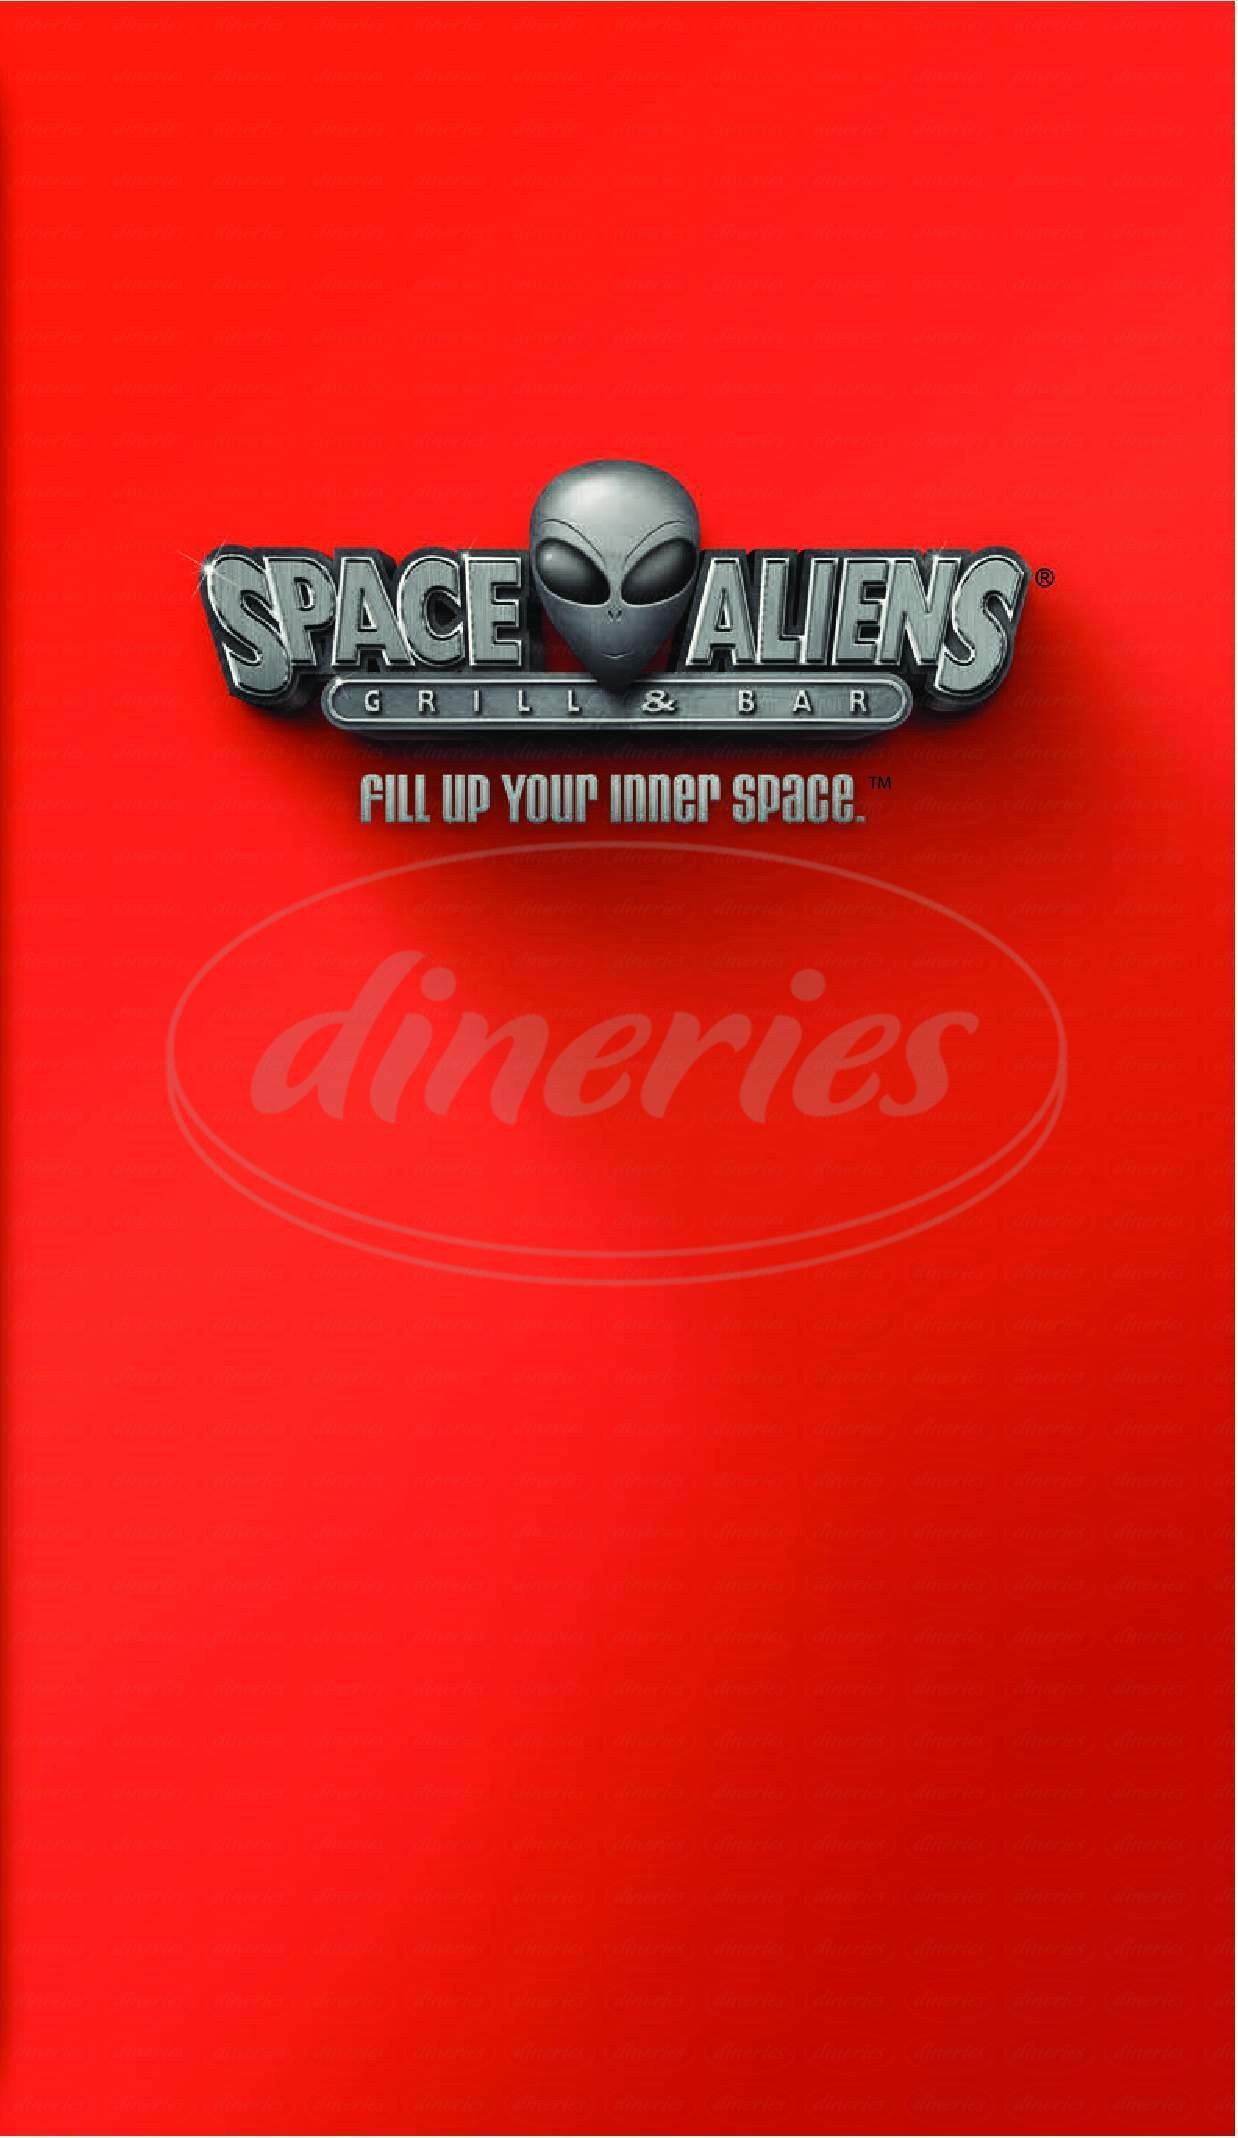 menu for Space Aliens Grill & Bar